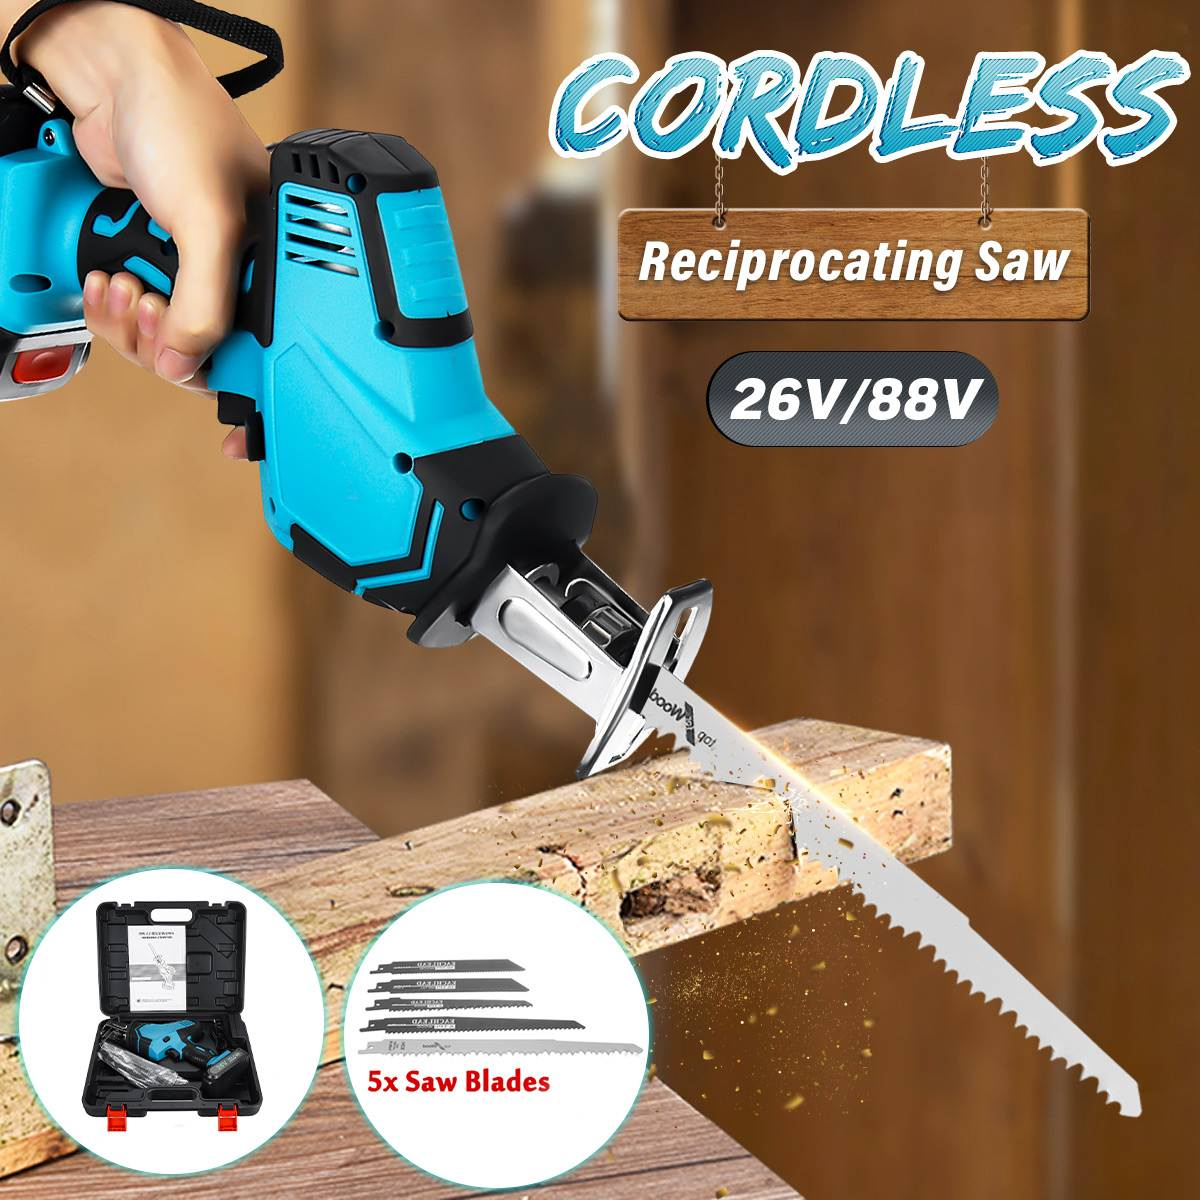 Doersupp 26V/88V Cordless Reciprocating Saw +5 Saw Blades Metal Cutting Wood Tool Portable Woodworking Cutters